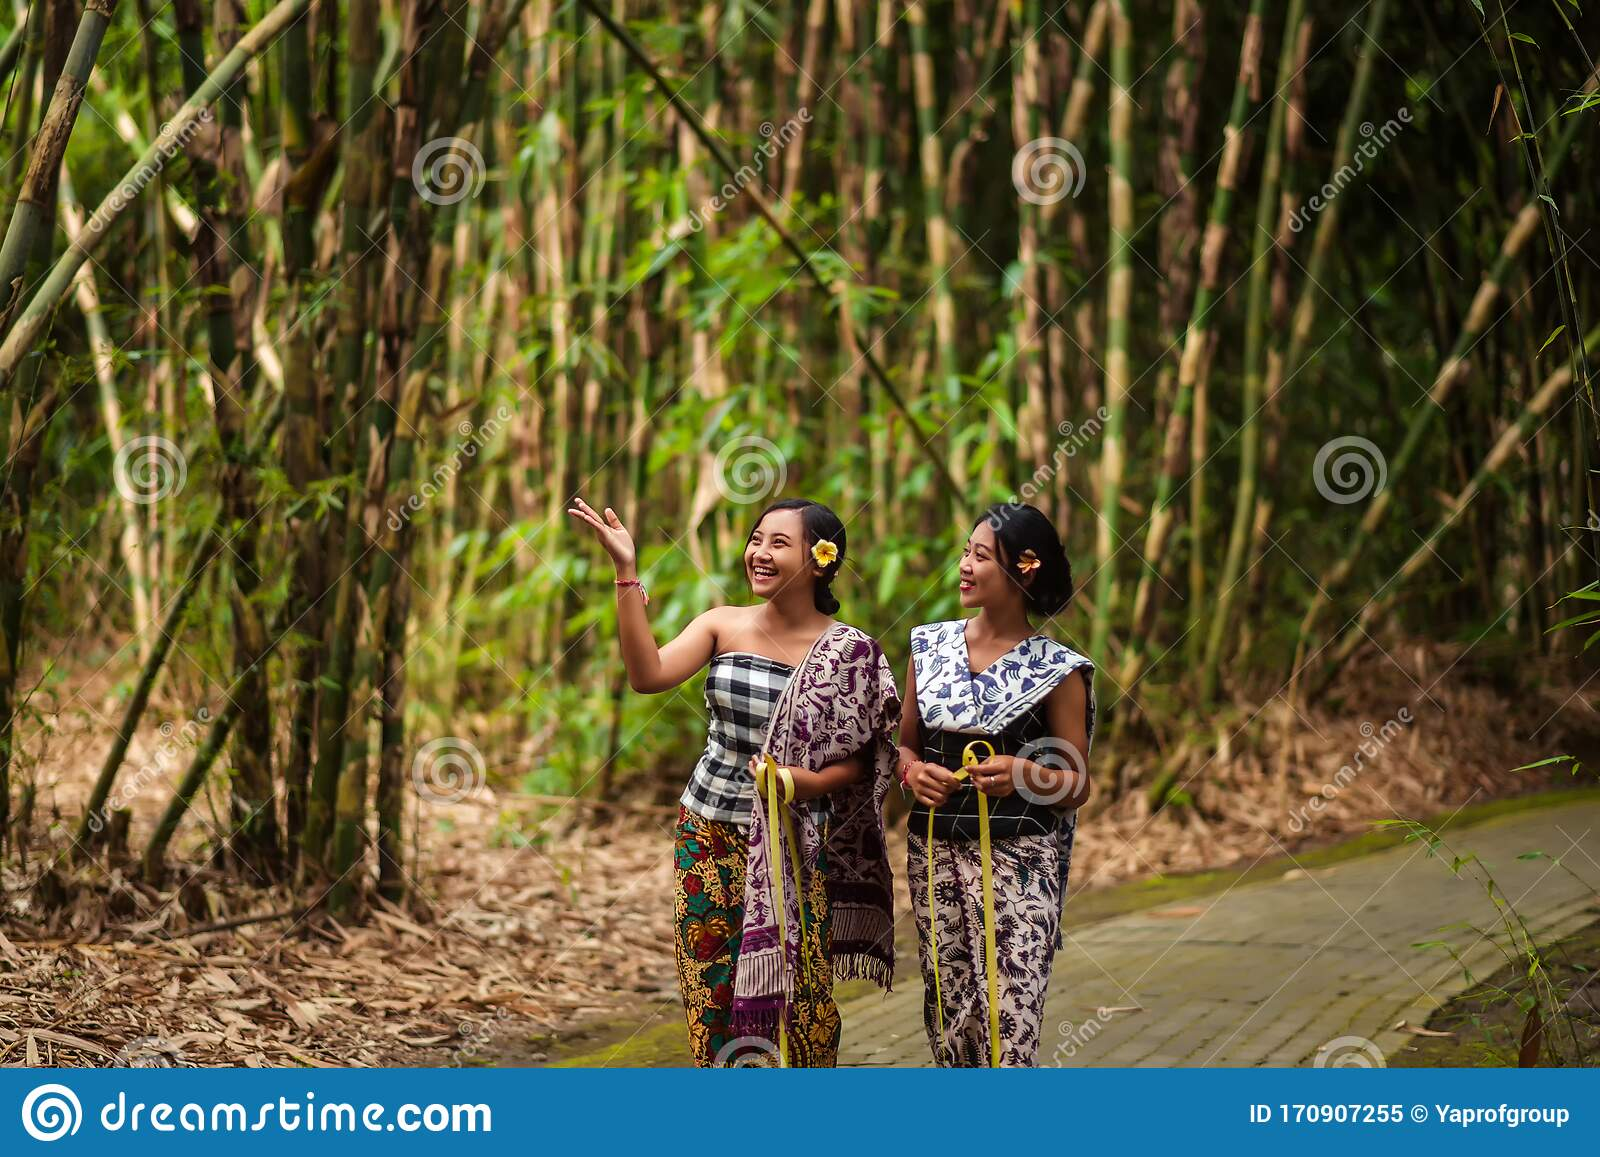 Girls In Traditional Balinese Clothes In The Bamboo Forest Stock